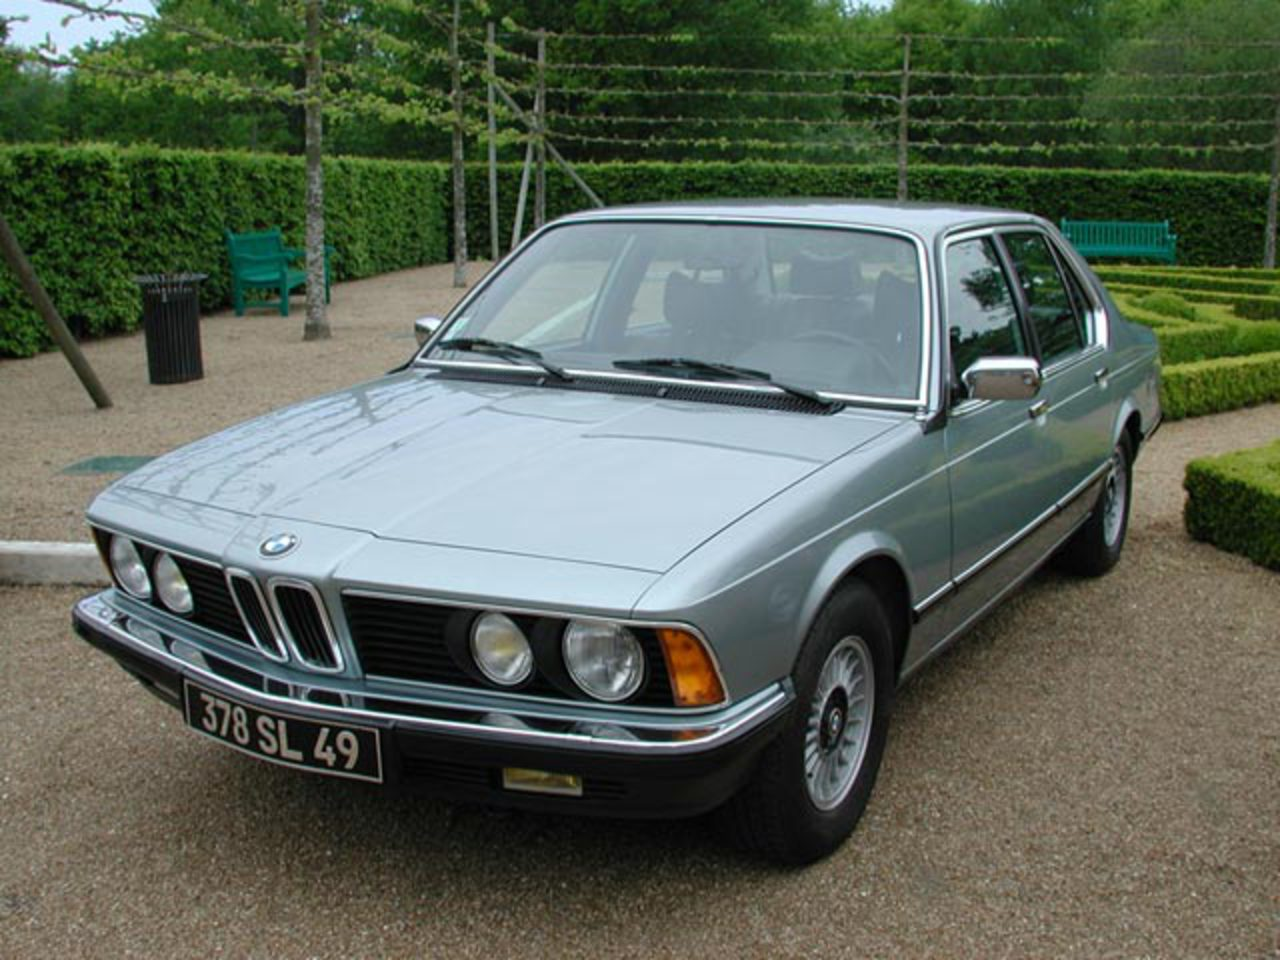 1984 Bmw 733i Wiring Diagram Free Download U2022 Schematics And Diagrams 1987 635csi At